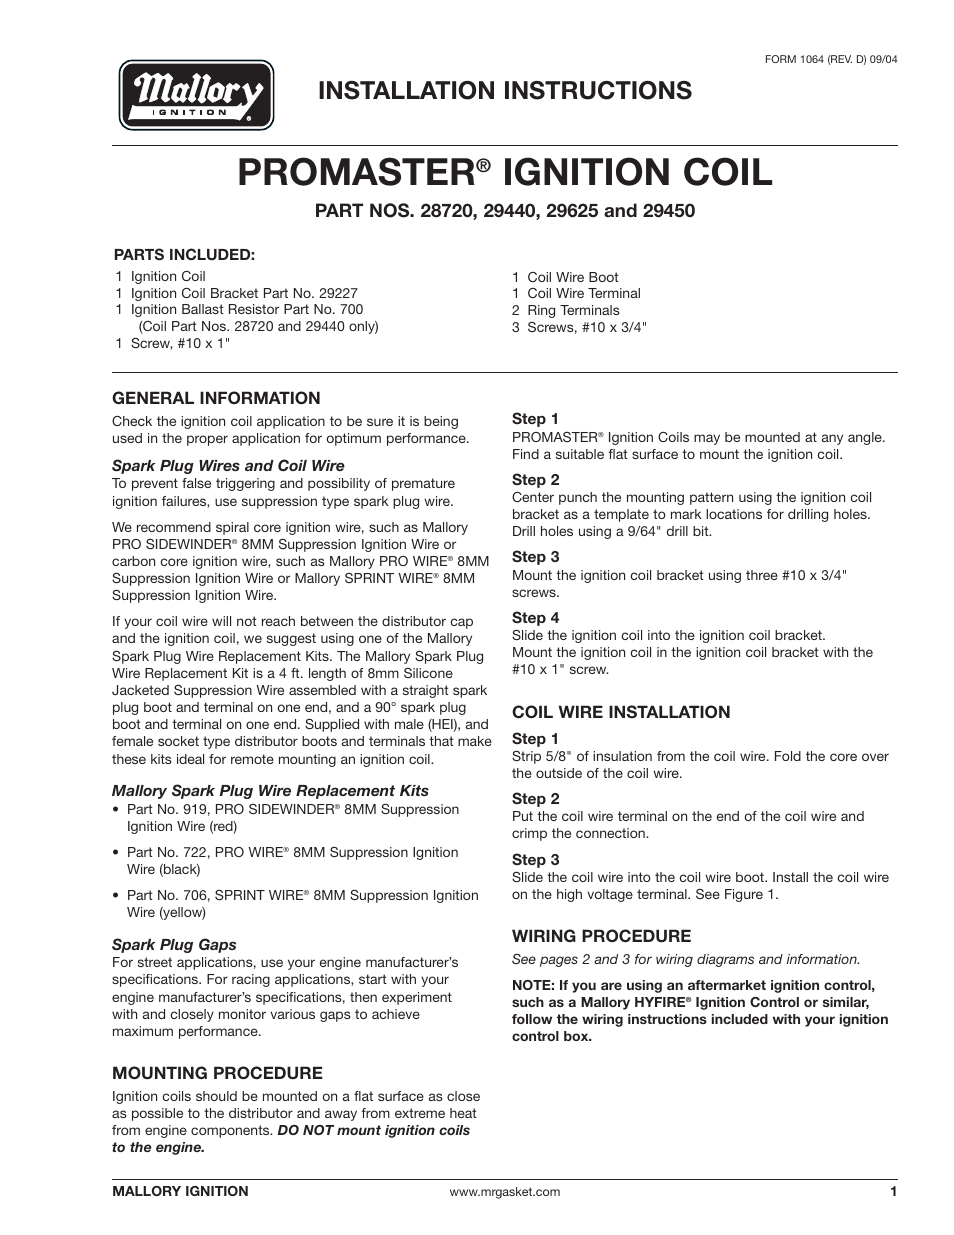 hight resolution of mallory ignition mallory promaster ignition coil 29440 29450 29625 29450 user manual 12 pages